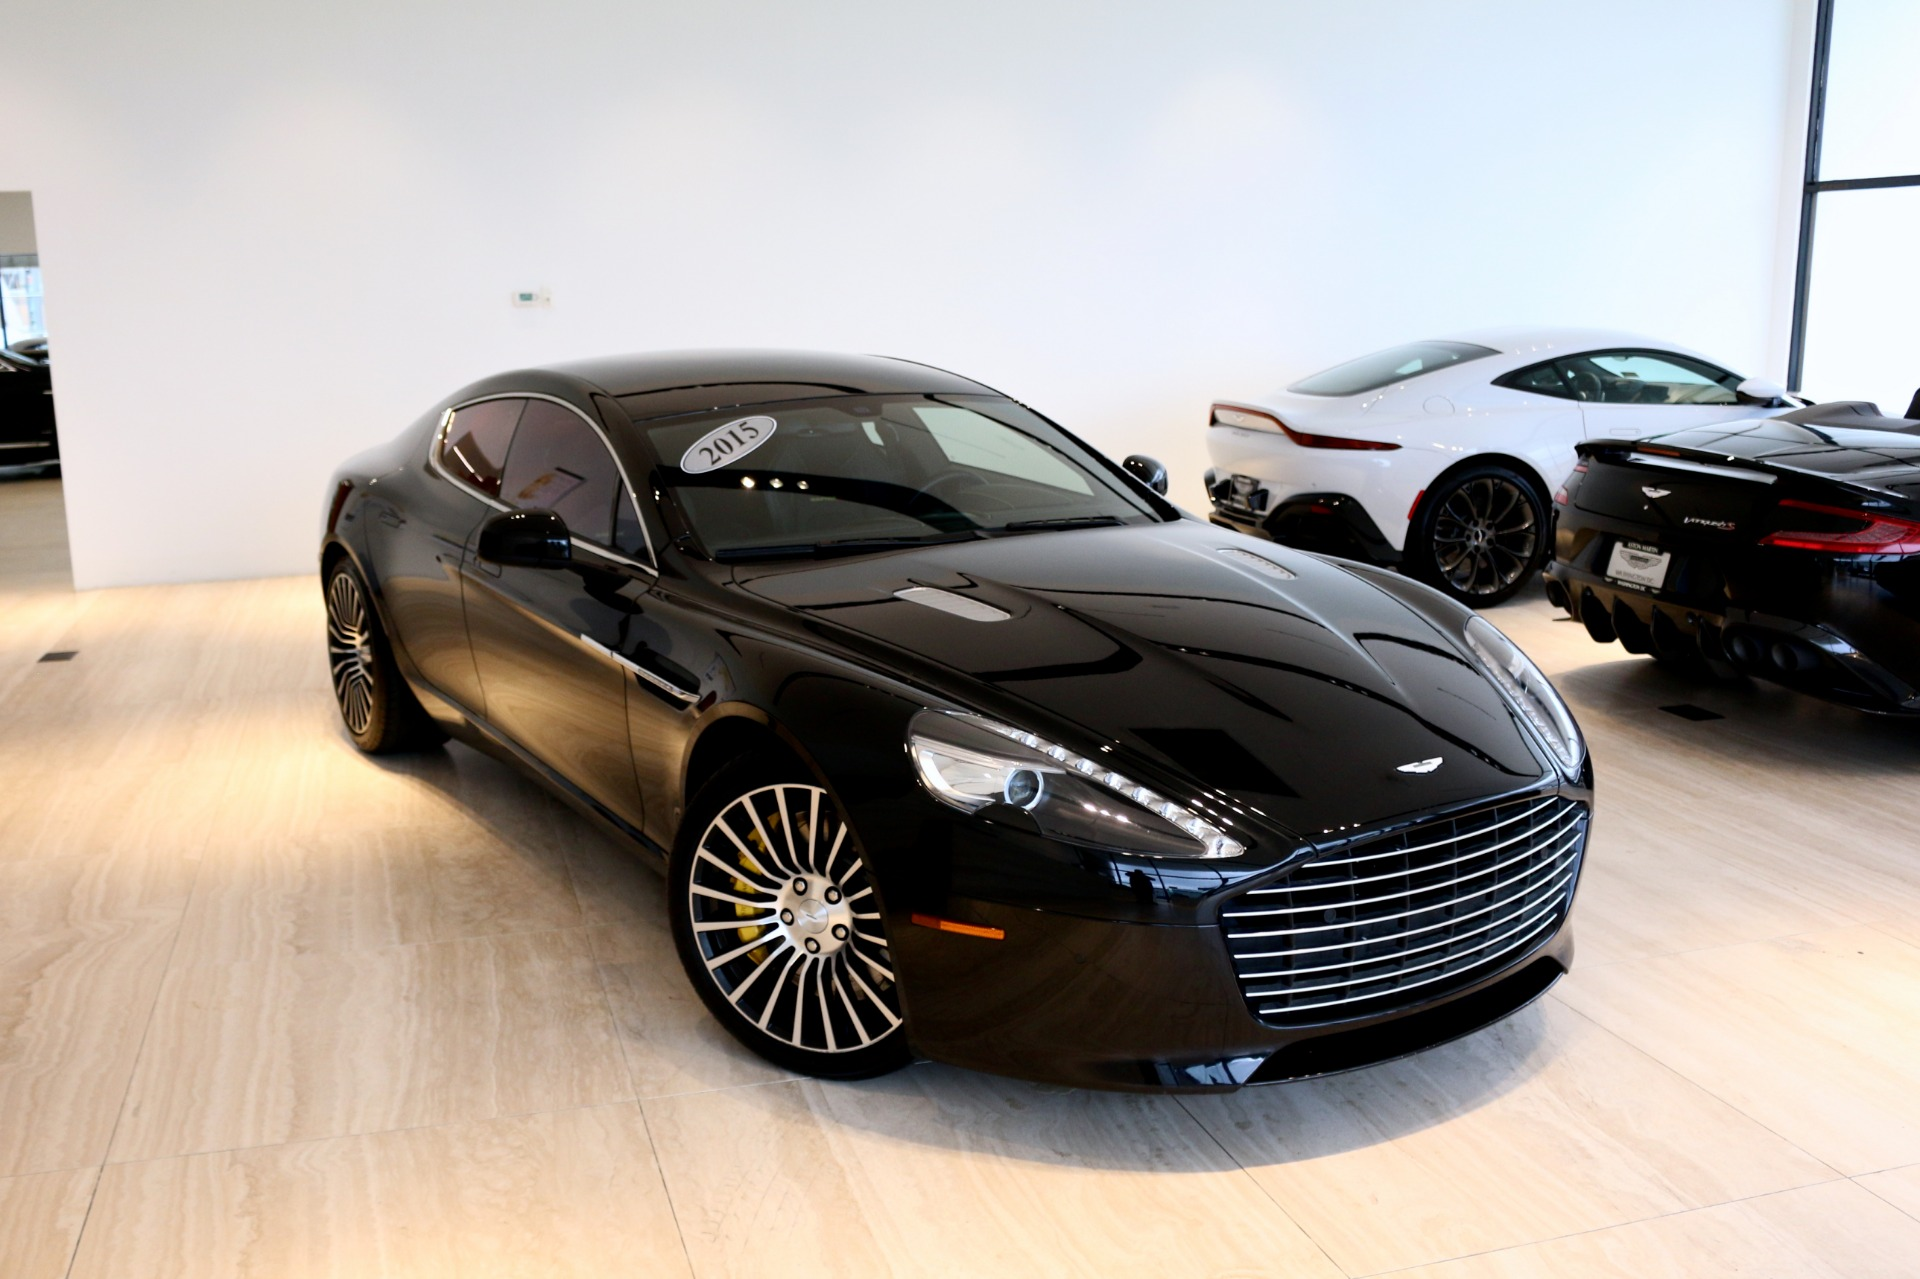 2015 Aston Martin Rapide S Stock # PF04615 For Sale Near